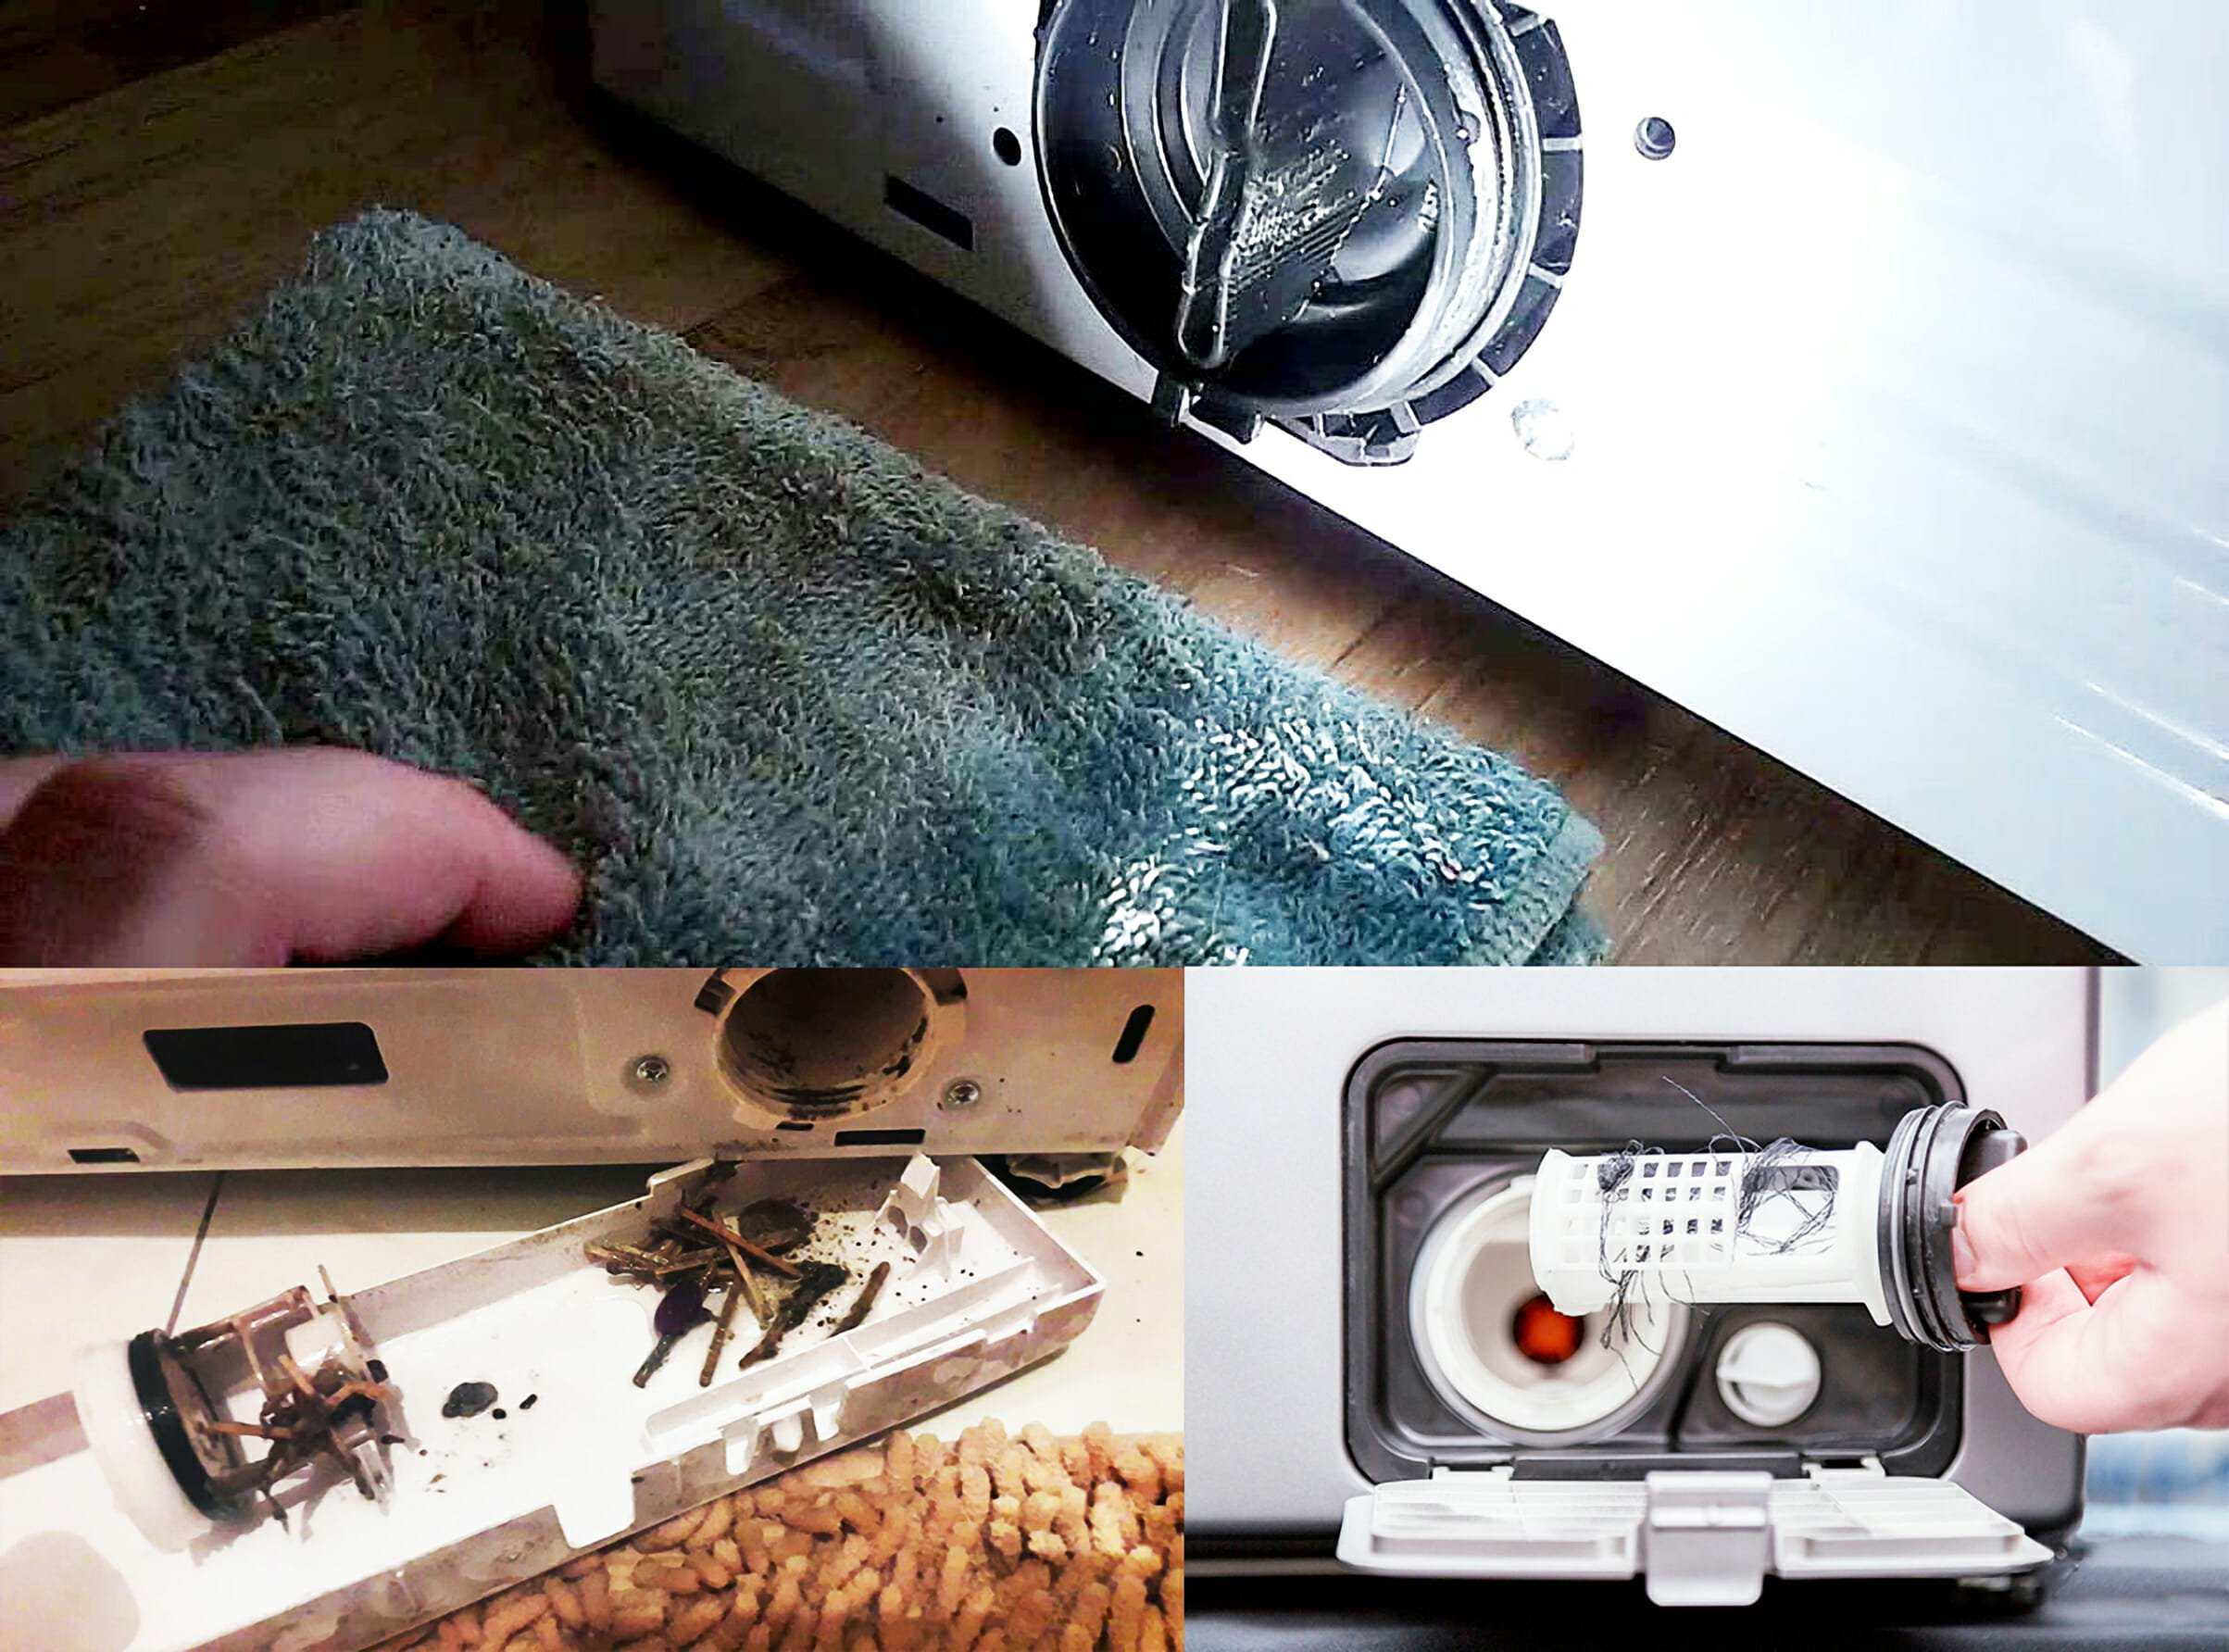 Cleaning the Bosch Washing Machine Filter